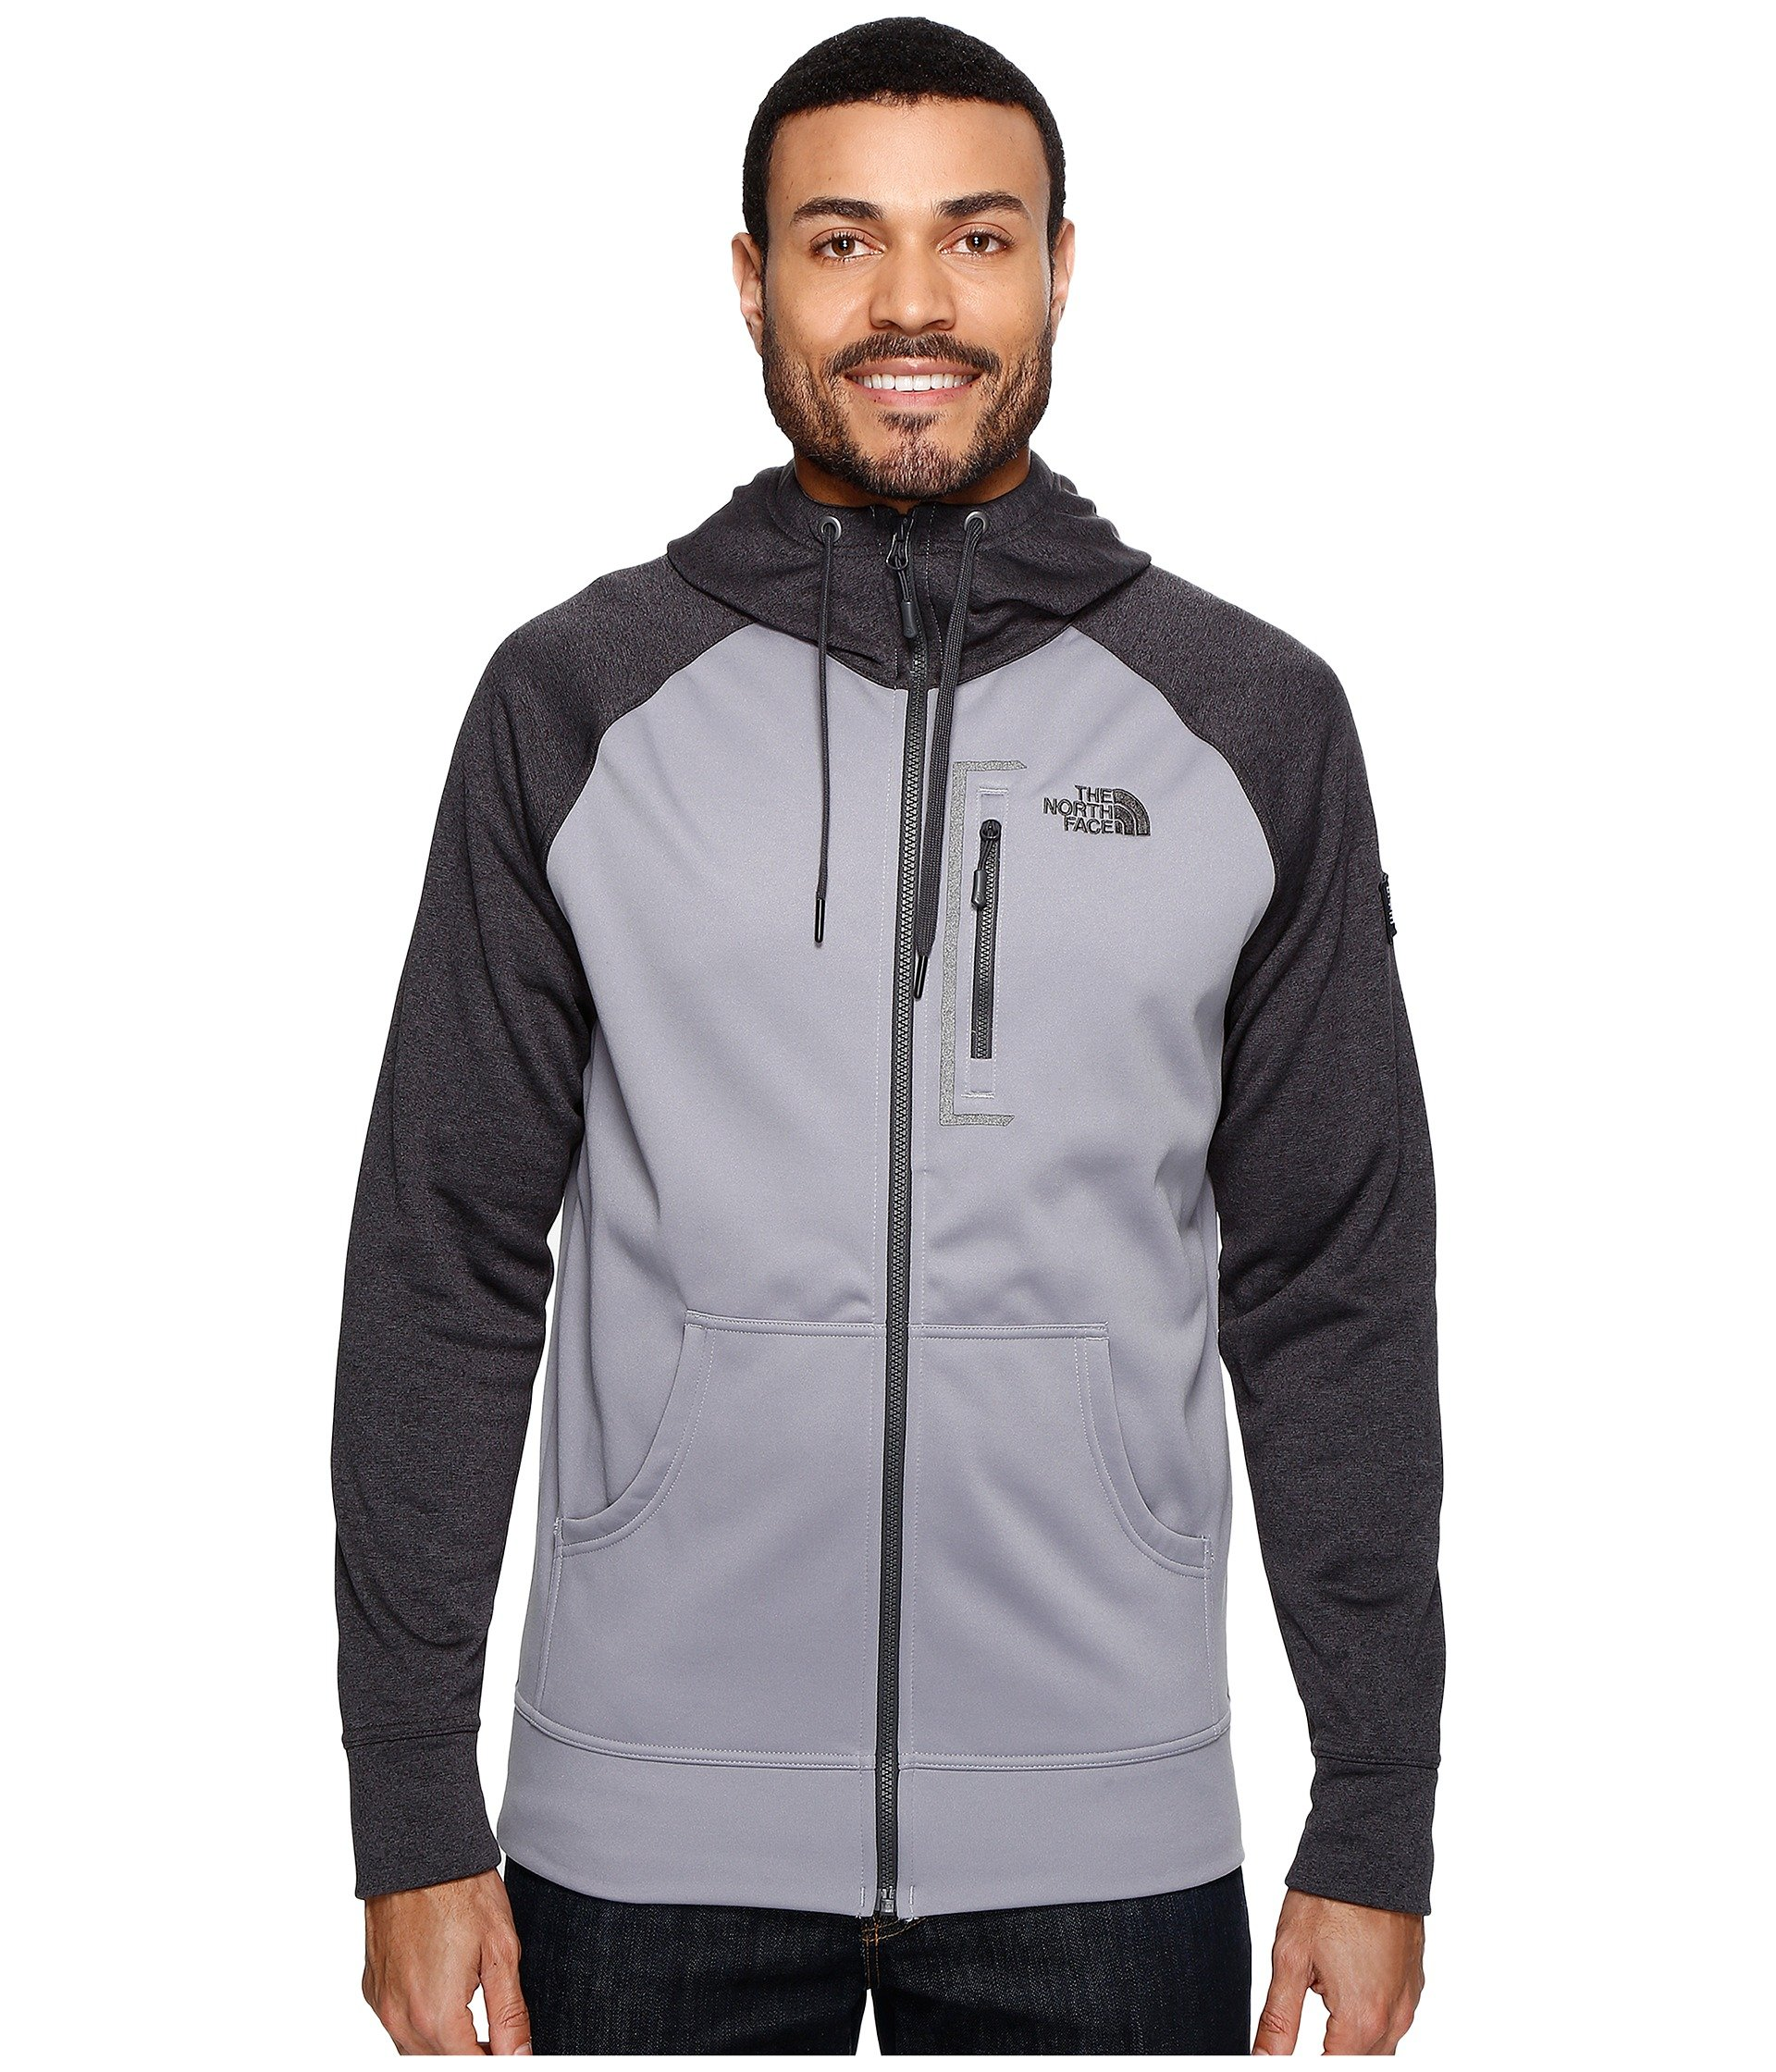 065bc8a52c8d THE NORTH FACE MACK MAYS FULL ZIP HOODIE